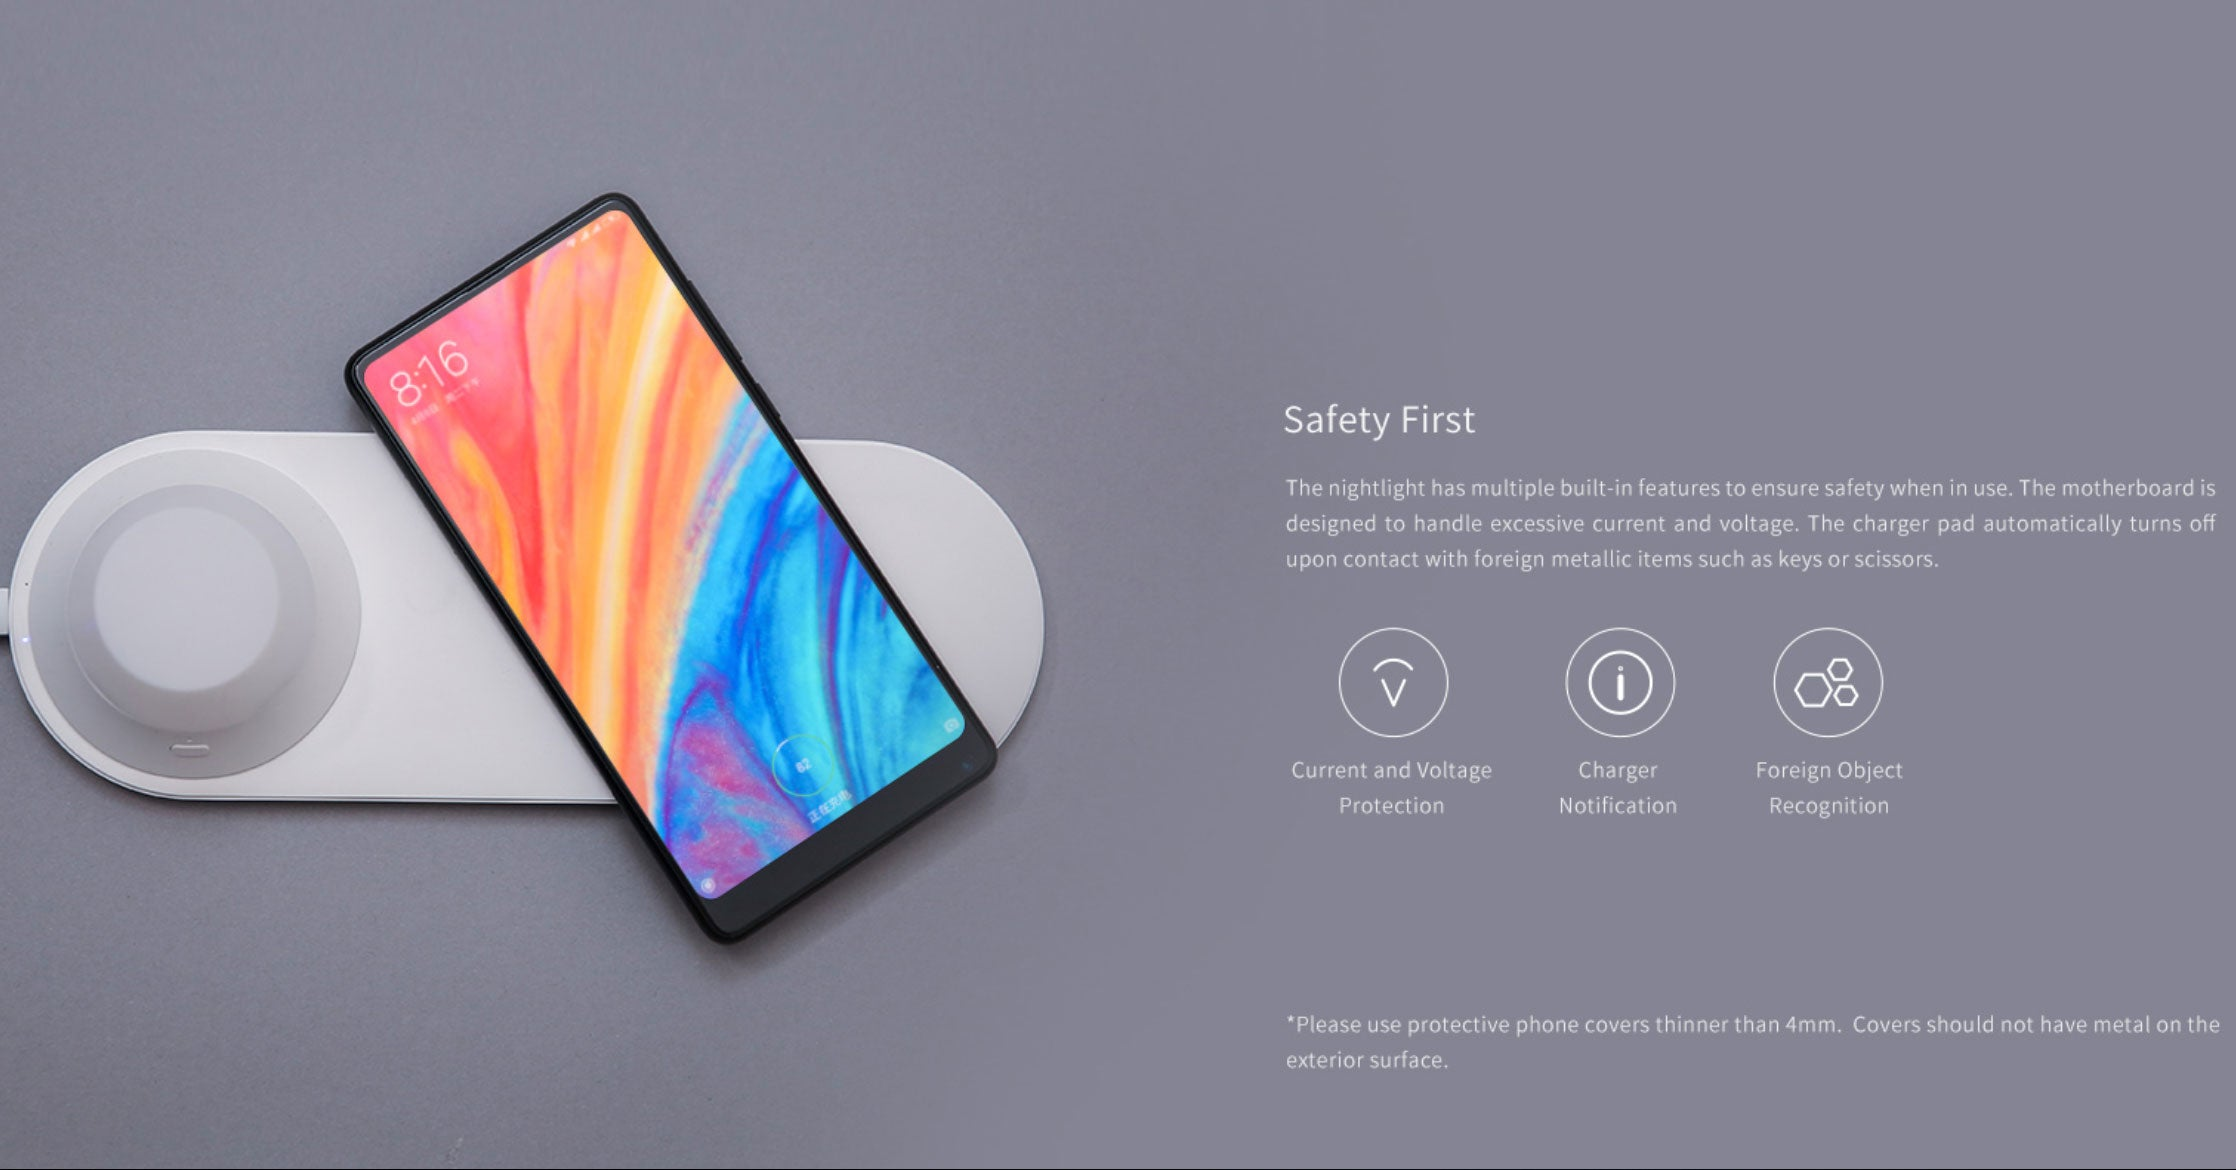 Yeelight XiaoMi 2 in 1 Wireless Fast Charging for mobile phone  Detachable LED Nightlight